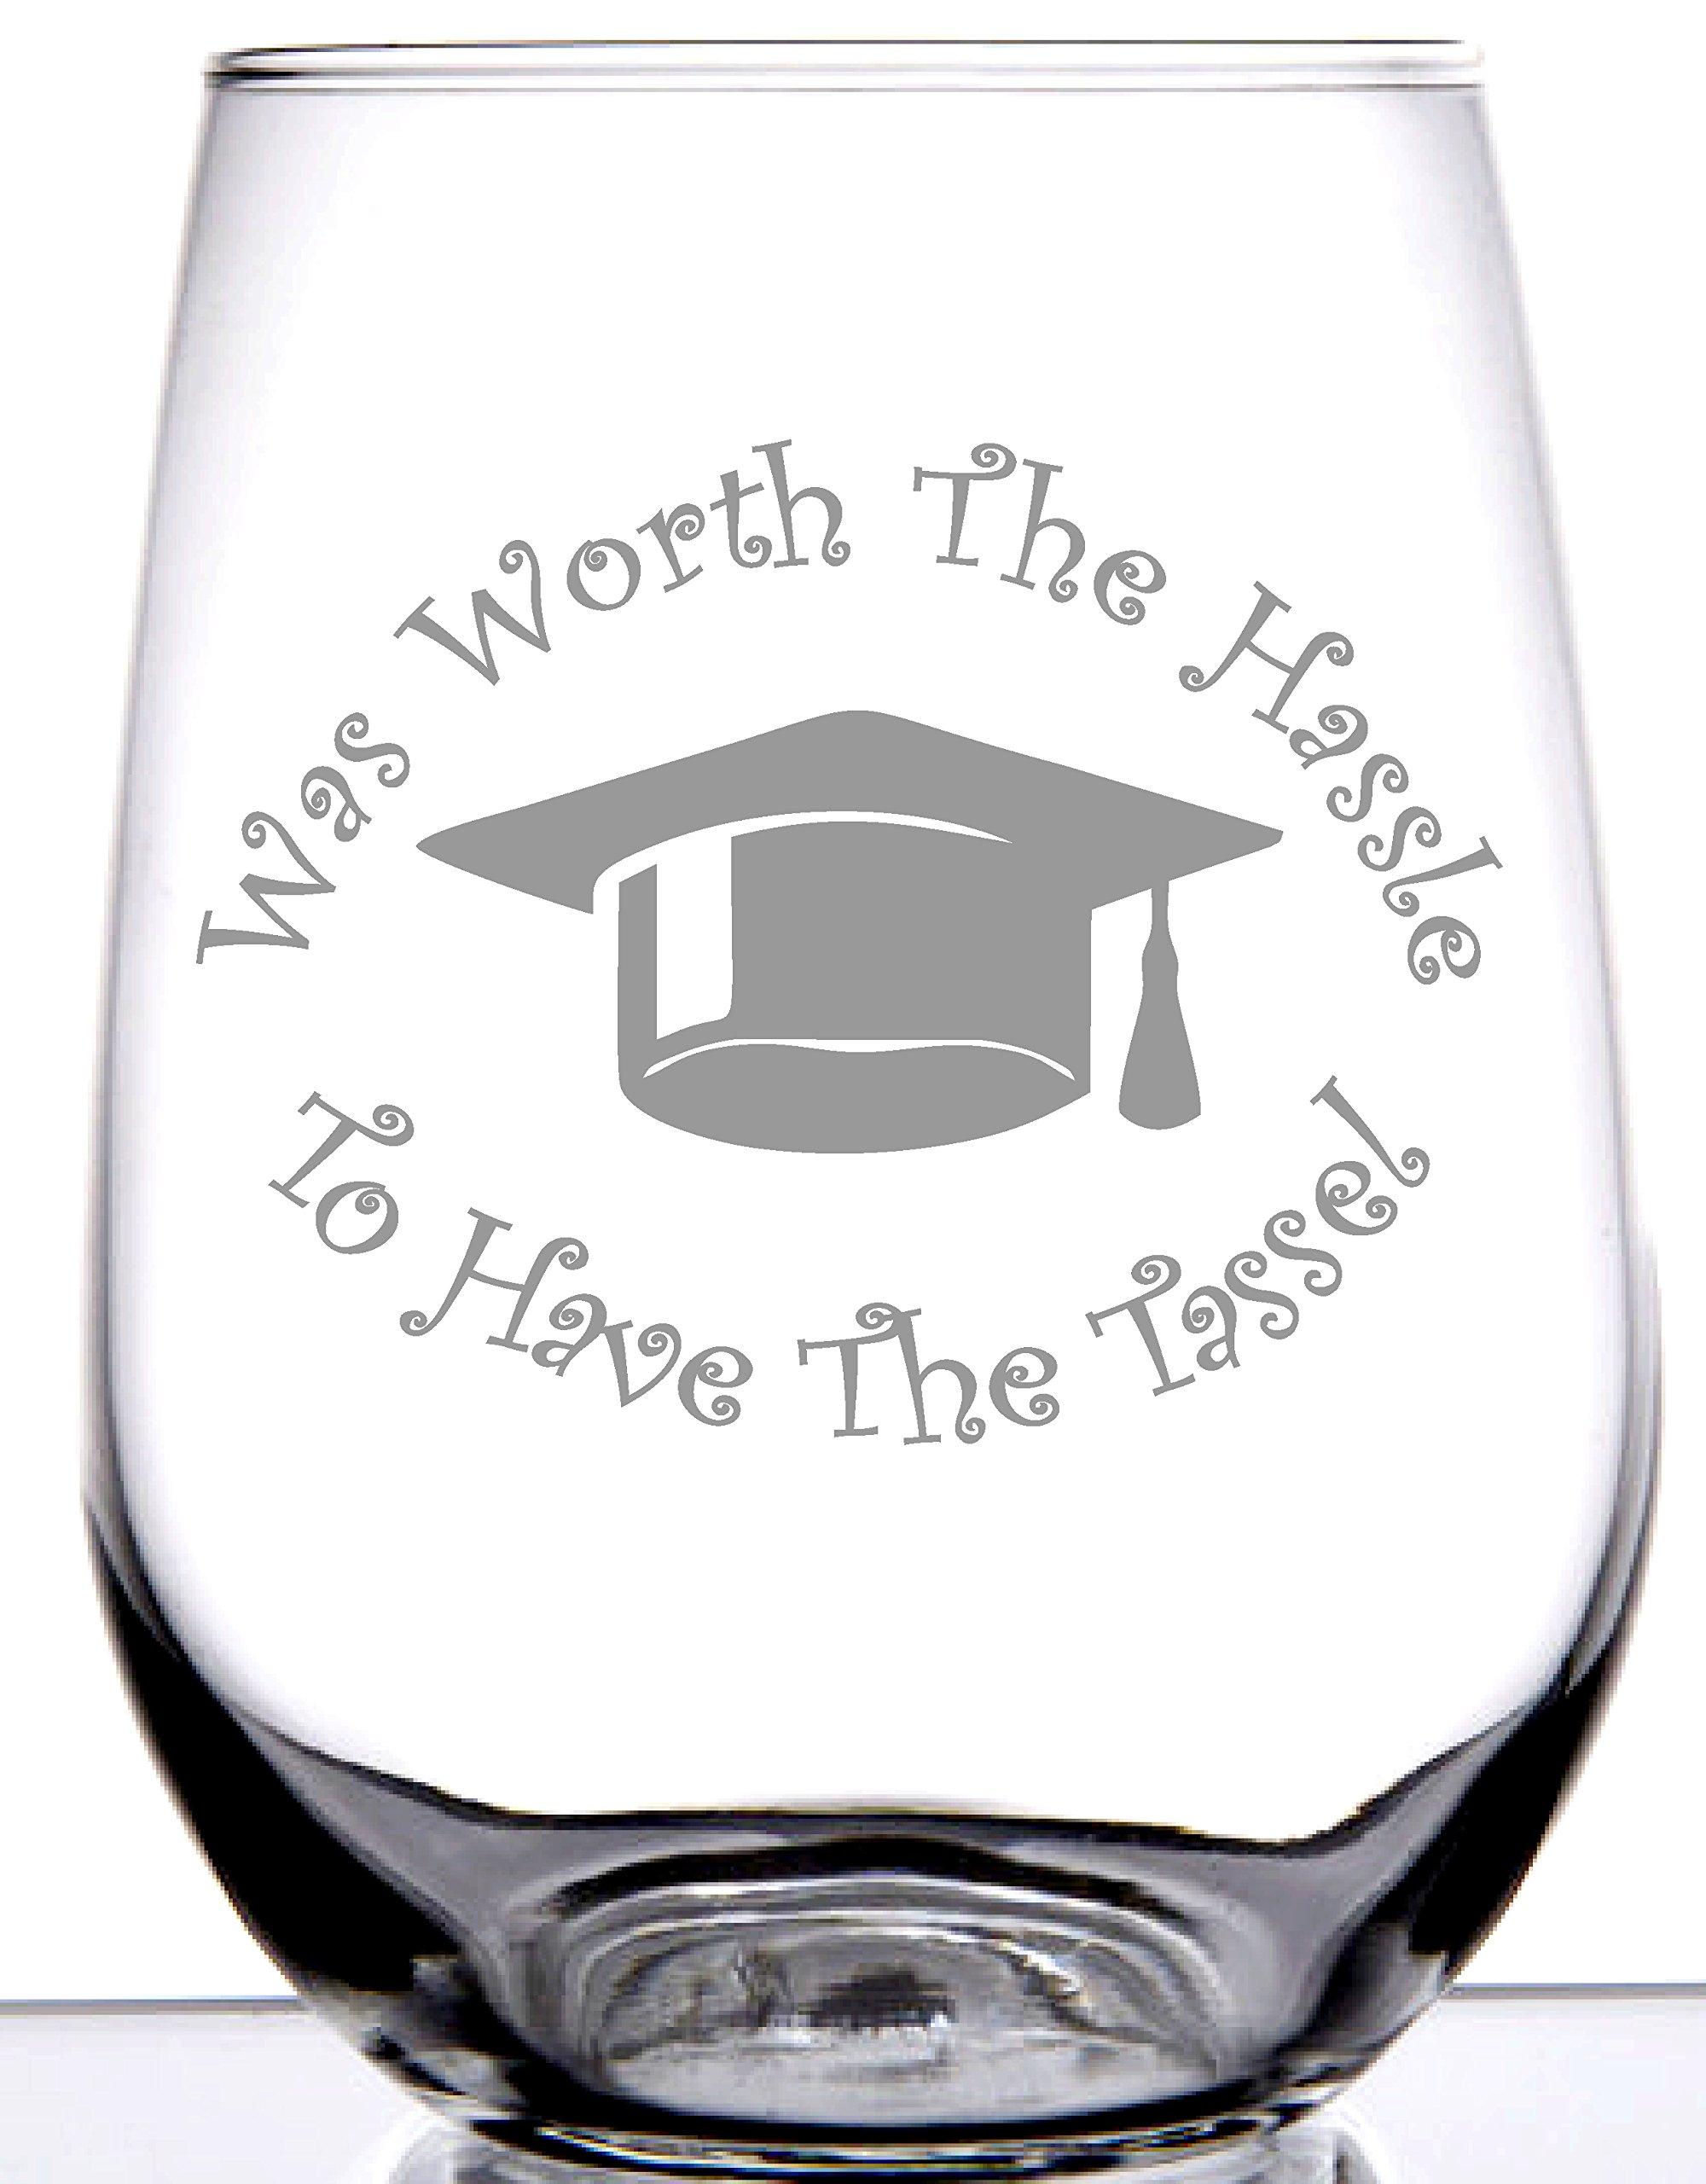 IE Laserware Graduation Was Worth the Hassle to Have the Tassel! 17 oz Stemless Etched Wine Glass